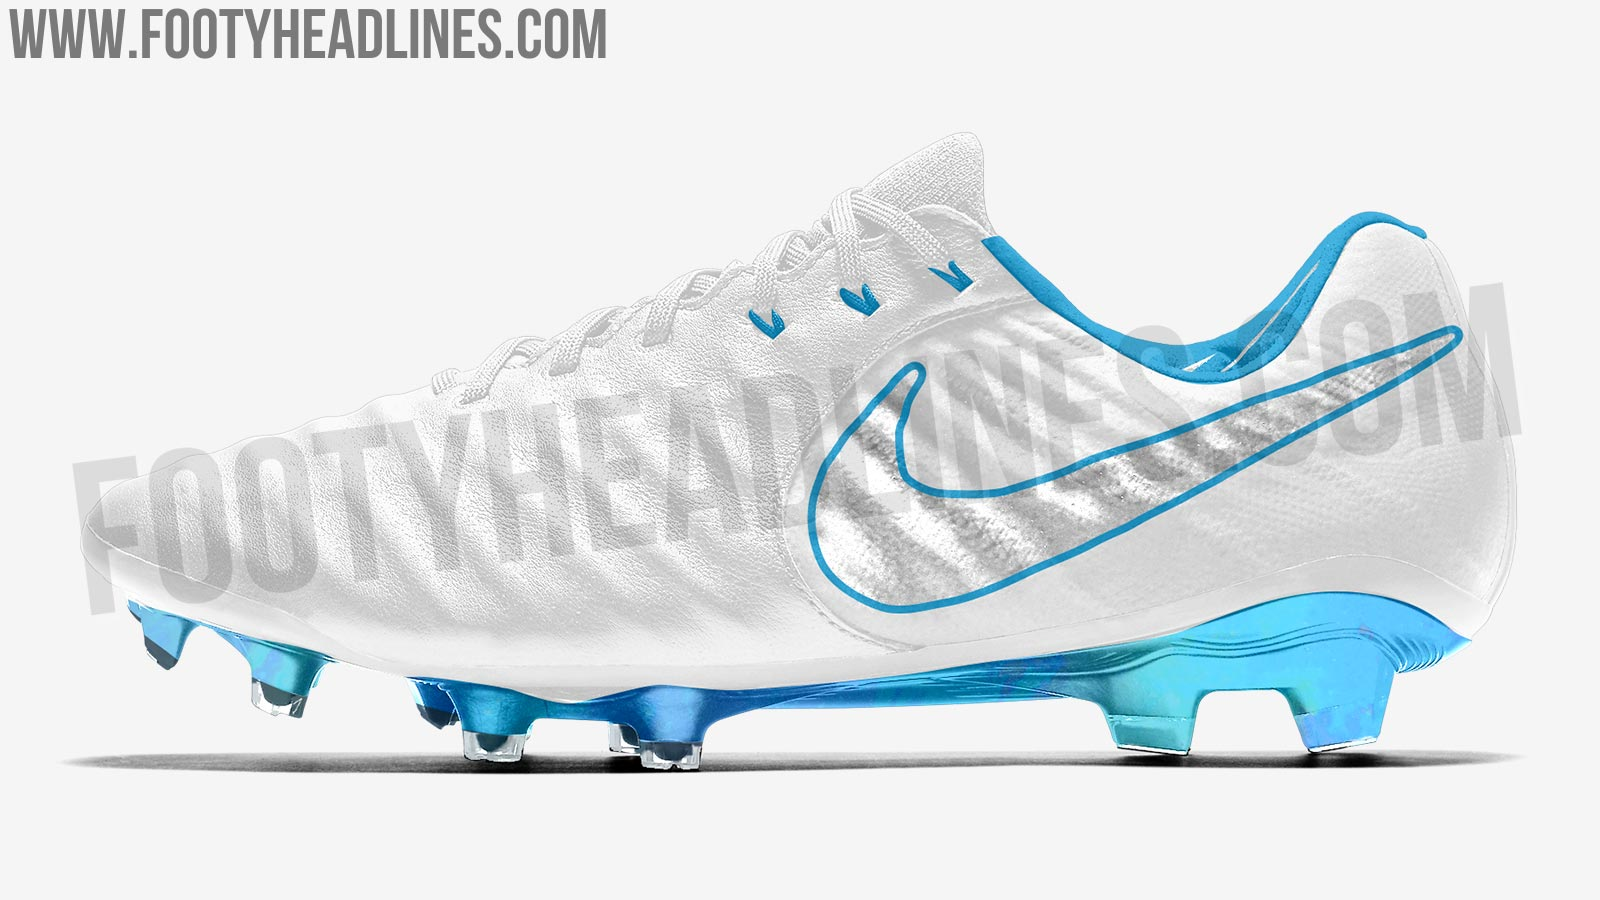 nike tiempo legend 2018 world cup boot leaked footy. Black Bedroom Furniture Sets. Home Design Ideas